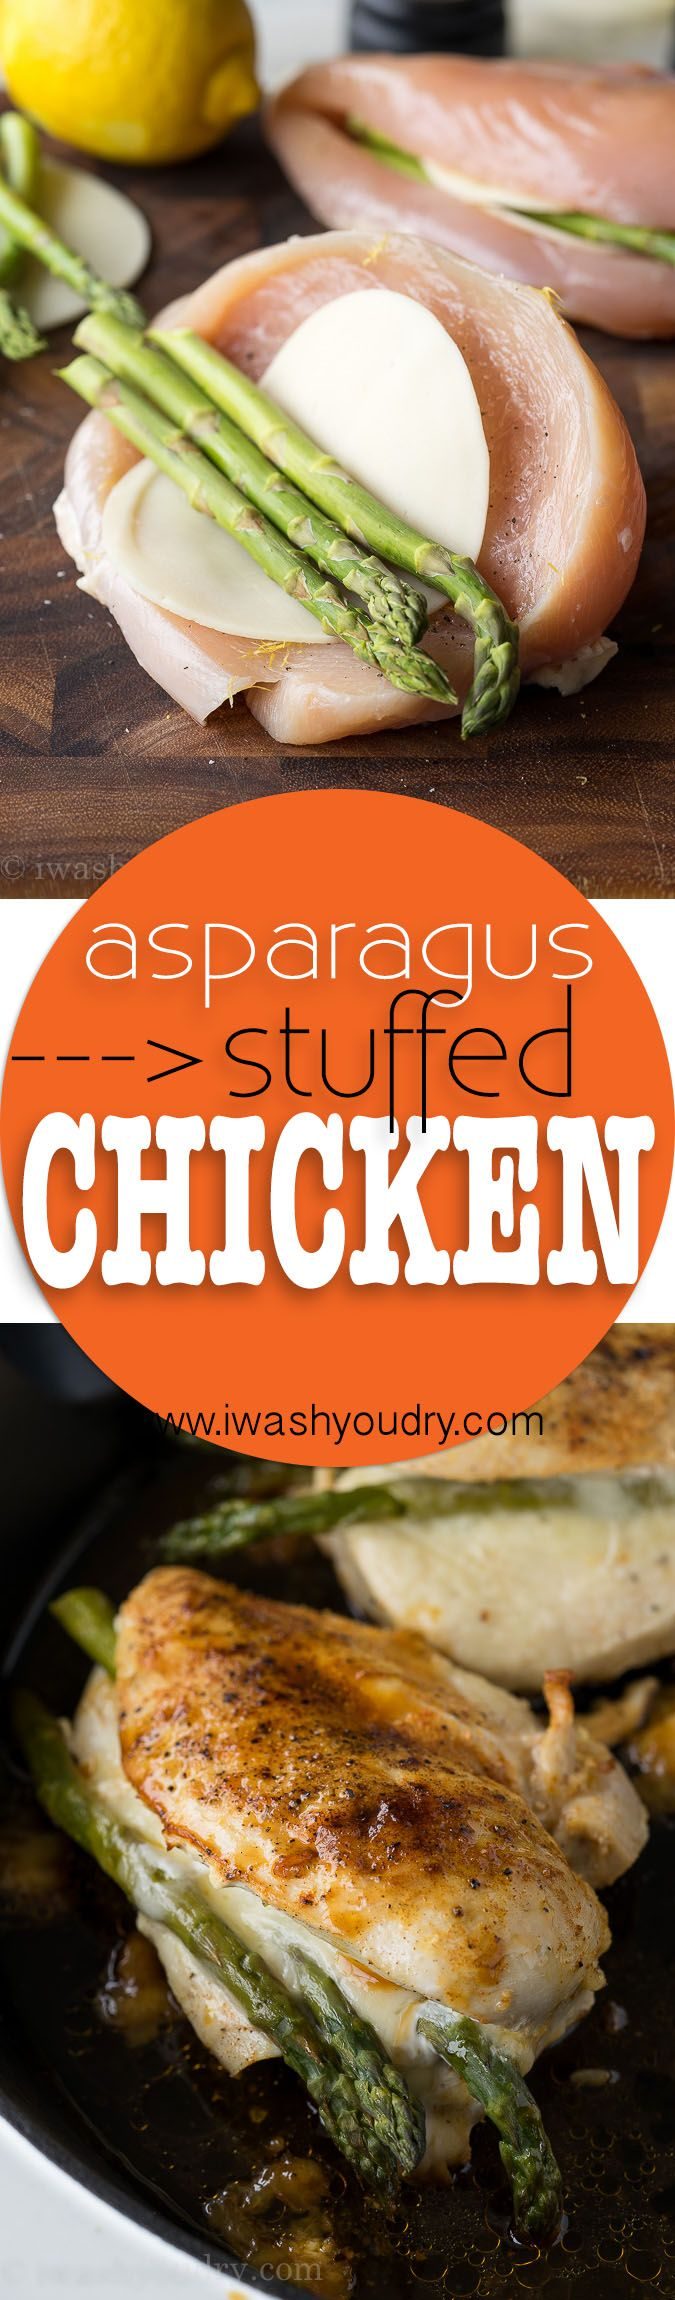 Asparagus Stuffed Chicken Breast